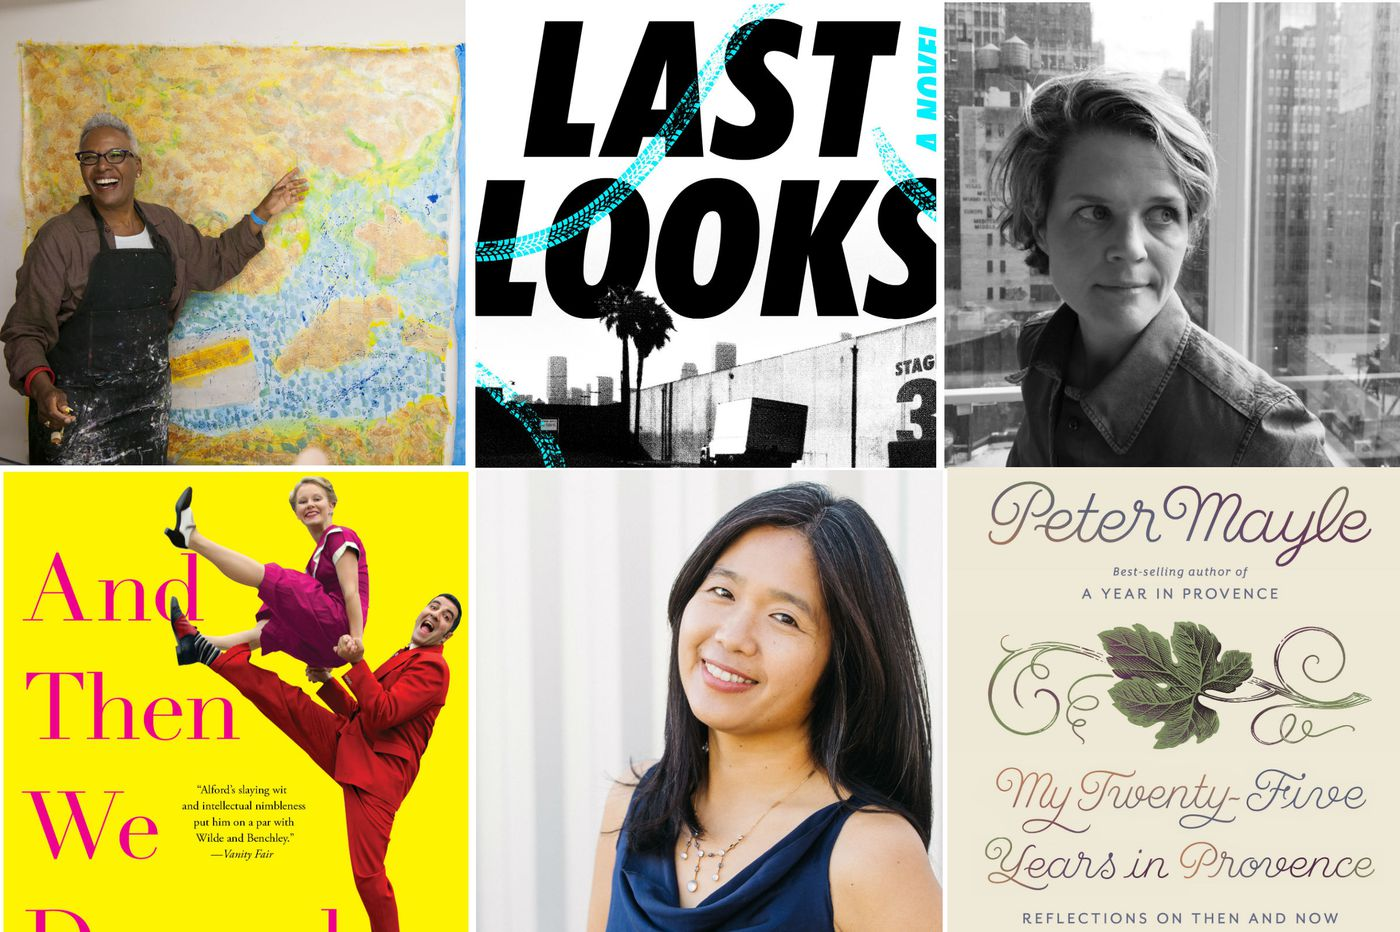 A summer made of stories: Great books for warmer days